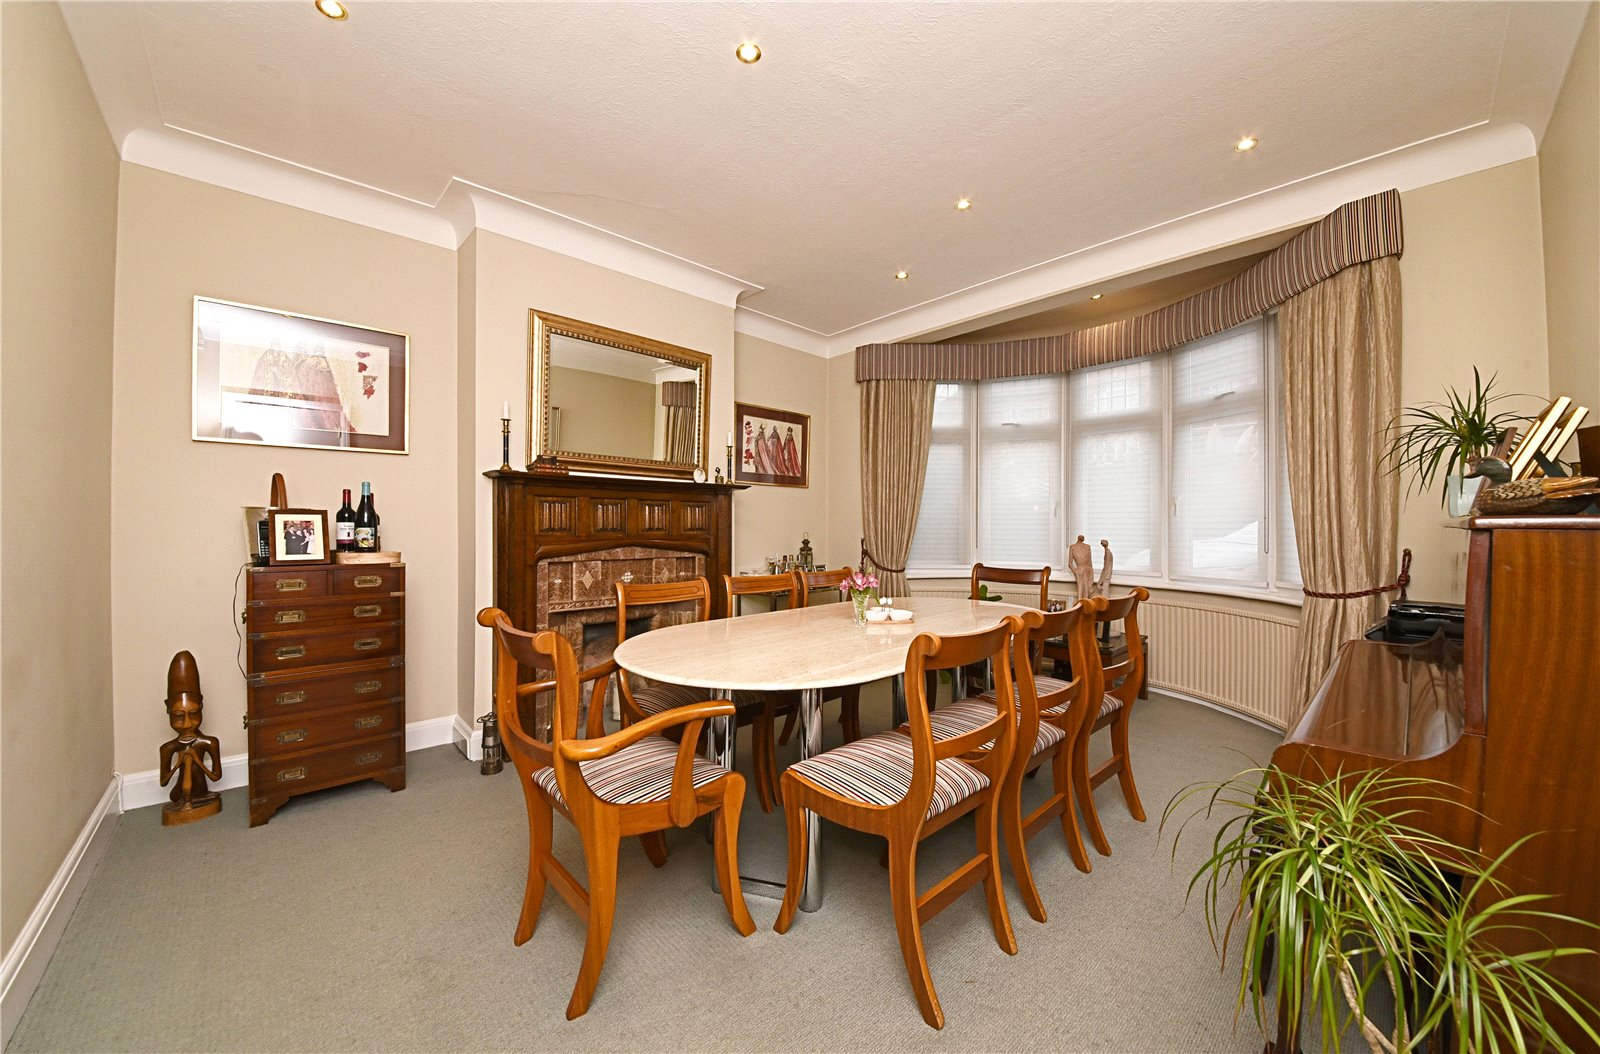 4 bed house for sale in Hendon, NW4 1LJ  - Property Image 5